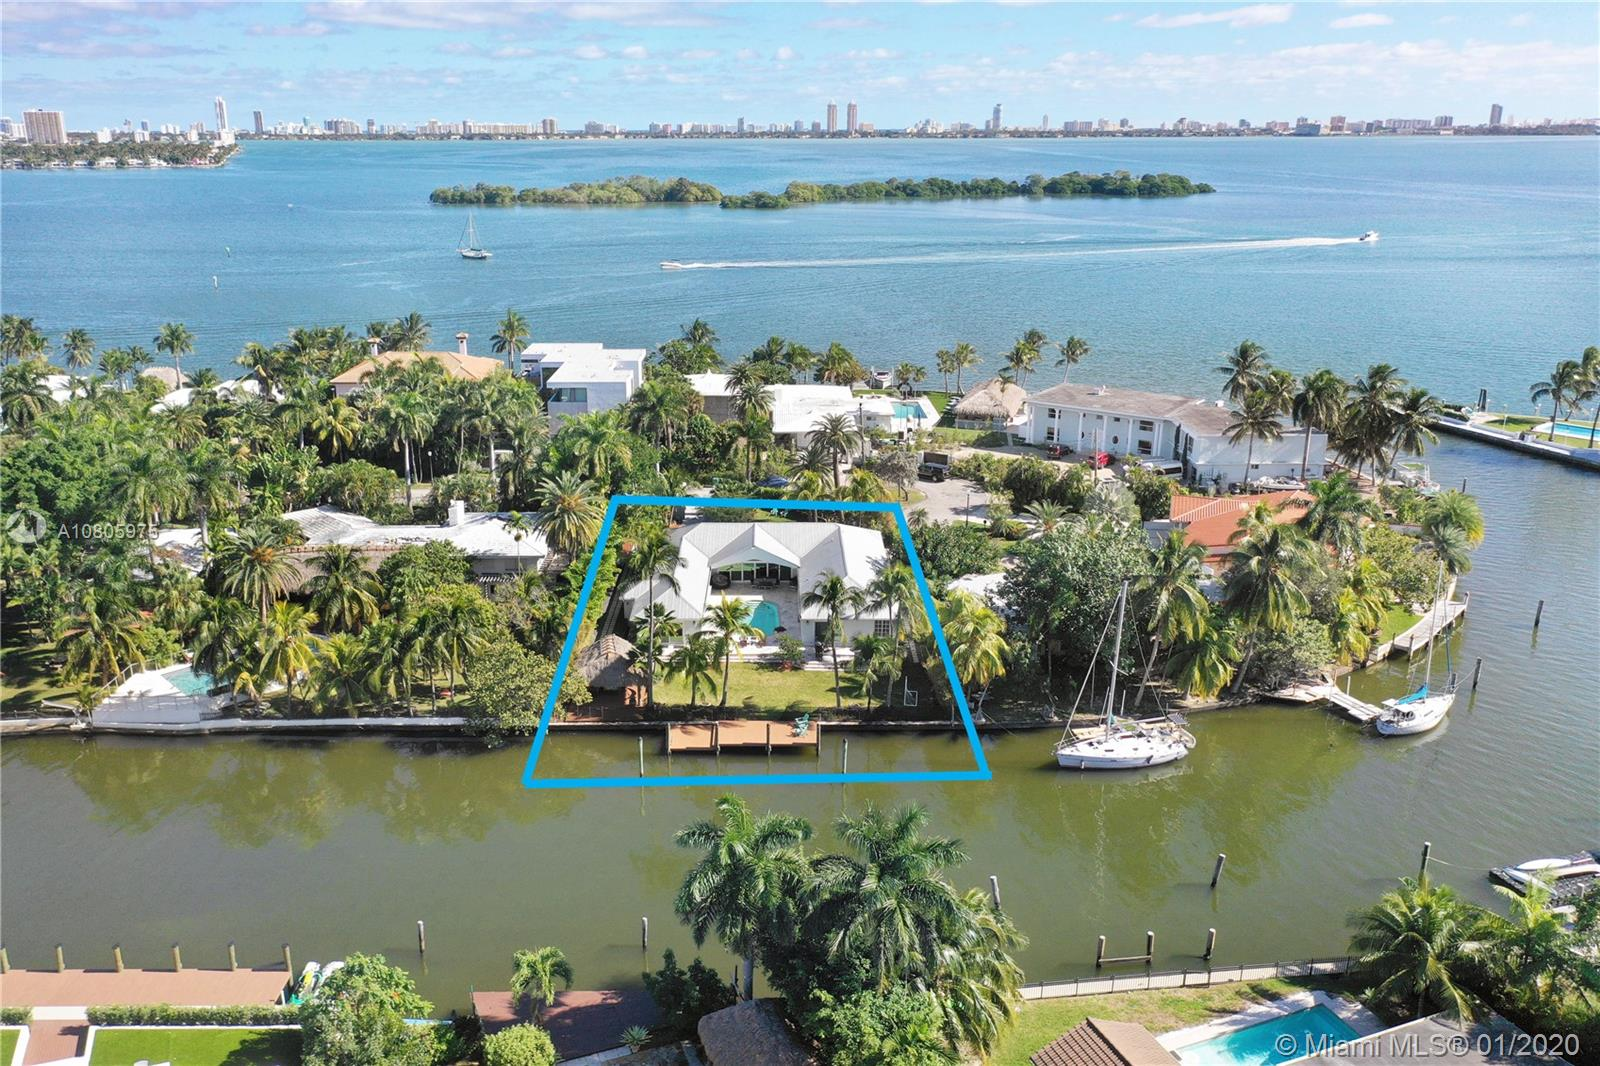 """Belle Meade Island""  103' of deep Waterfront dockage. Only 3 Lots of the Wide Bay !!! Oversized 1/3 Acre Lot on a Private ""Cul-De-Sac"" Peninsula. 5 Bdr 4Bth 4400 SF 2 Car Garage Pool. Walk into Beautiful Hi Vaulted Ceilings Classic 1960's ""A"" Frame Construction, All Glass surrounding the Pool  ""Lots of Light"" All Rooms open to Pool and Backyard. Remodeled Throughout. Large Center Island Gourmet Gas Kitchen, with Sub-Zero and Wolf Appliances. All Marble Flooring, Porcelain and Marble Baths. Huge Master Suite w/sitting room, features huge walk in closet, a Large Bath with Floating Tub and separate Shower Stall. Tropical Landscaped Large Backyard (Lots of yard space to Entertain and play in) with Chickee Hut and Oversized Dock. 24 hour Guard gated Community."